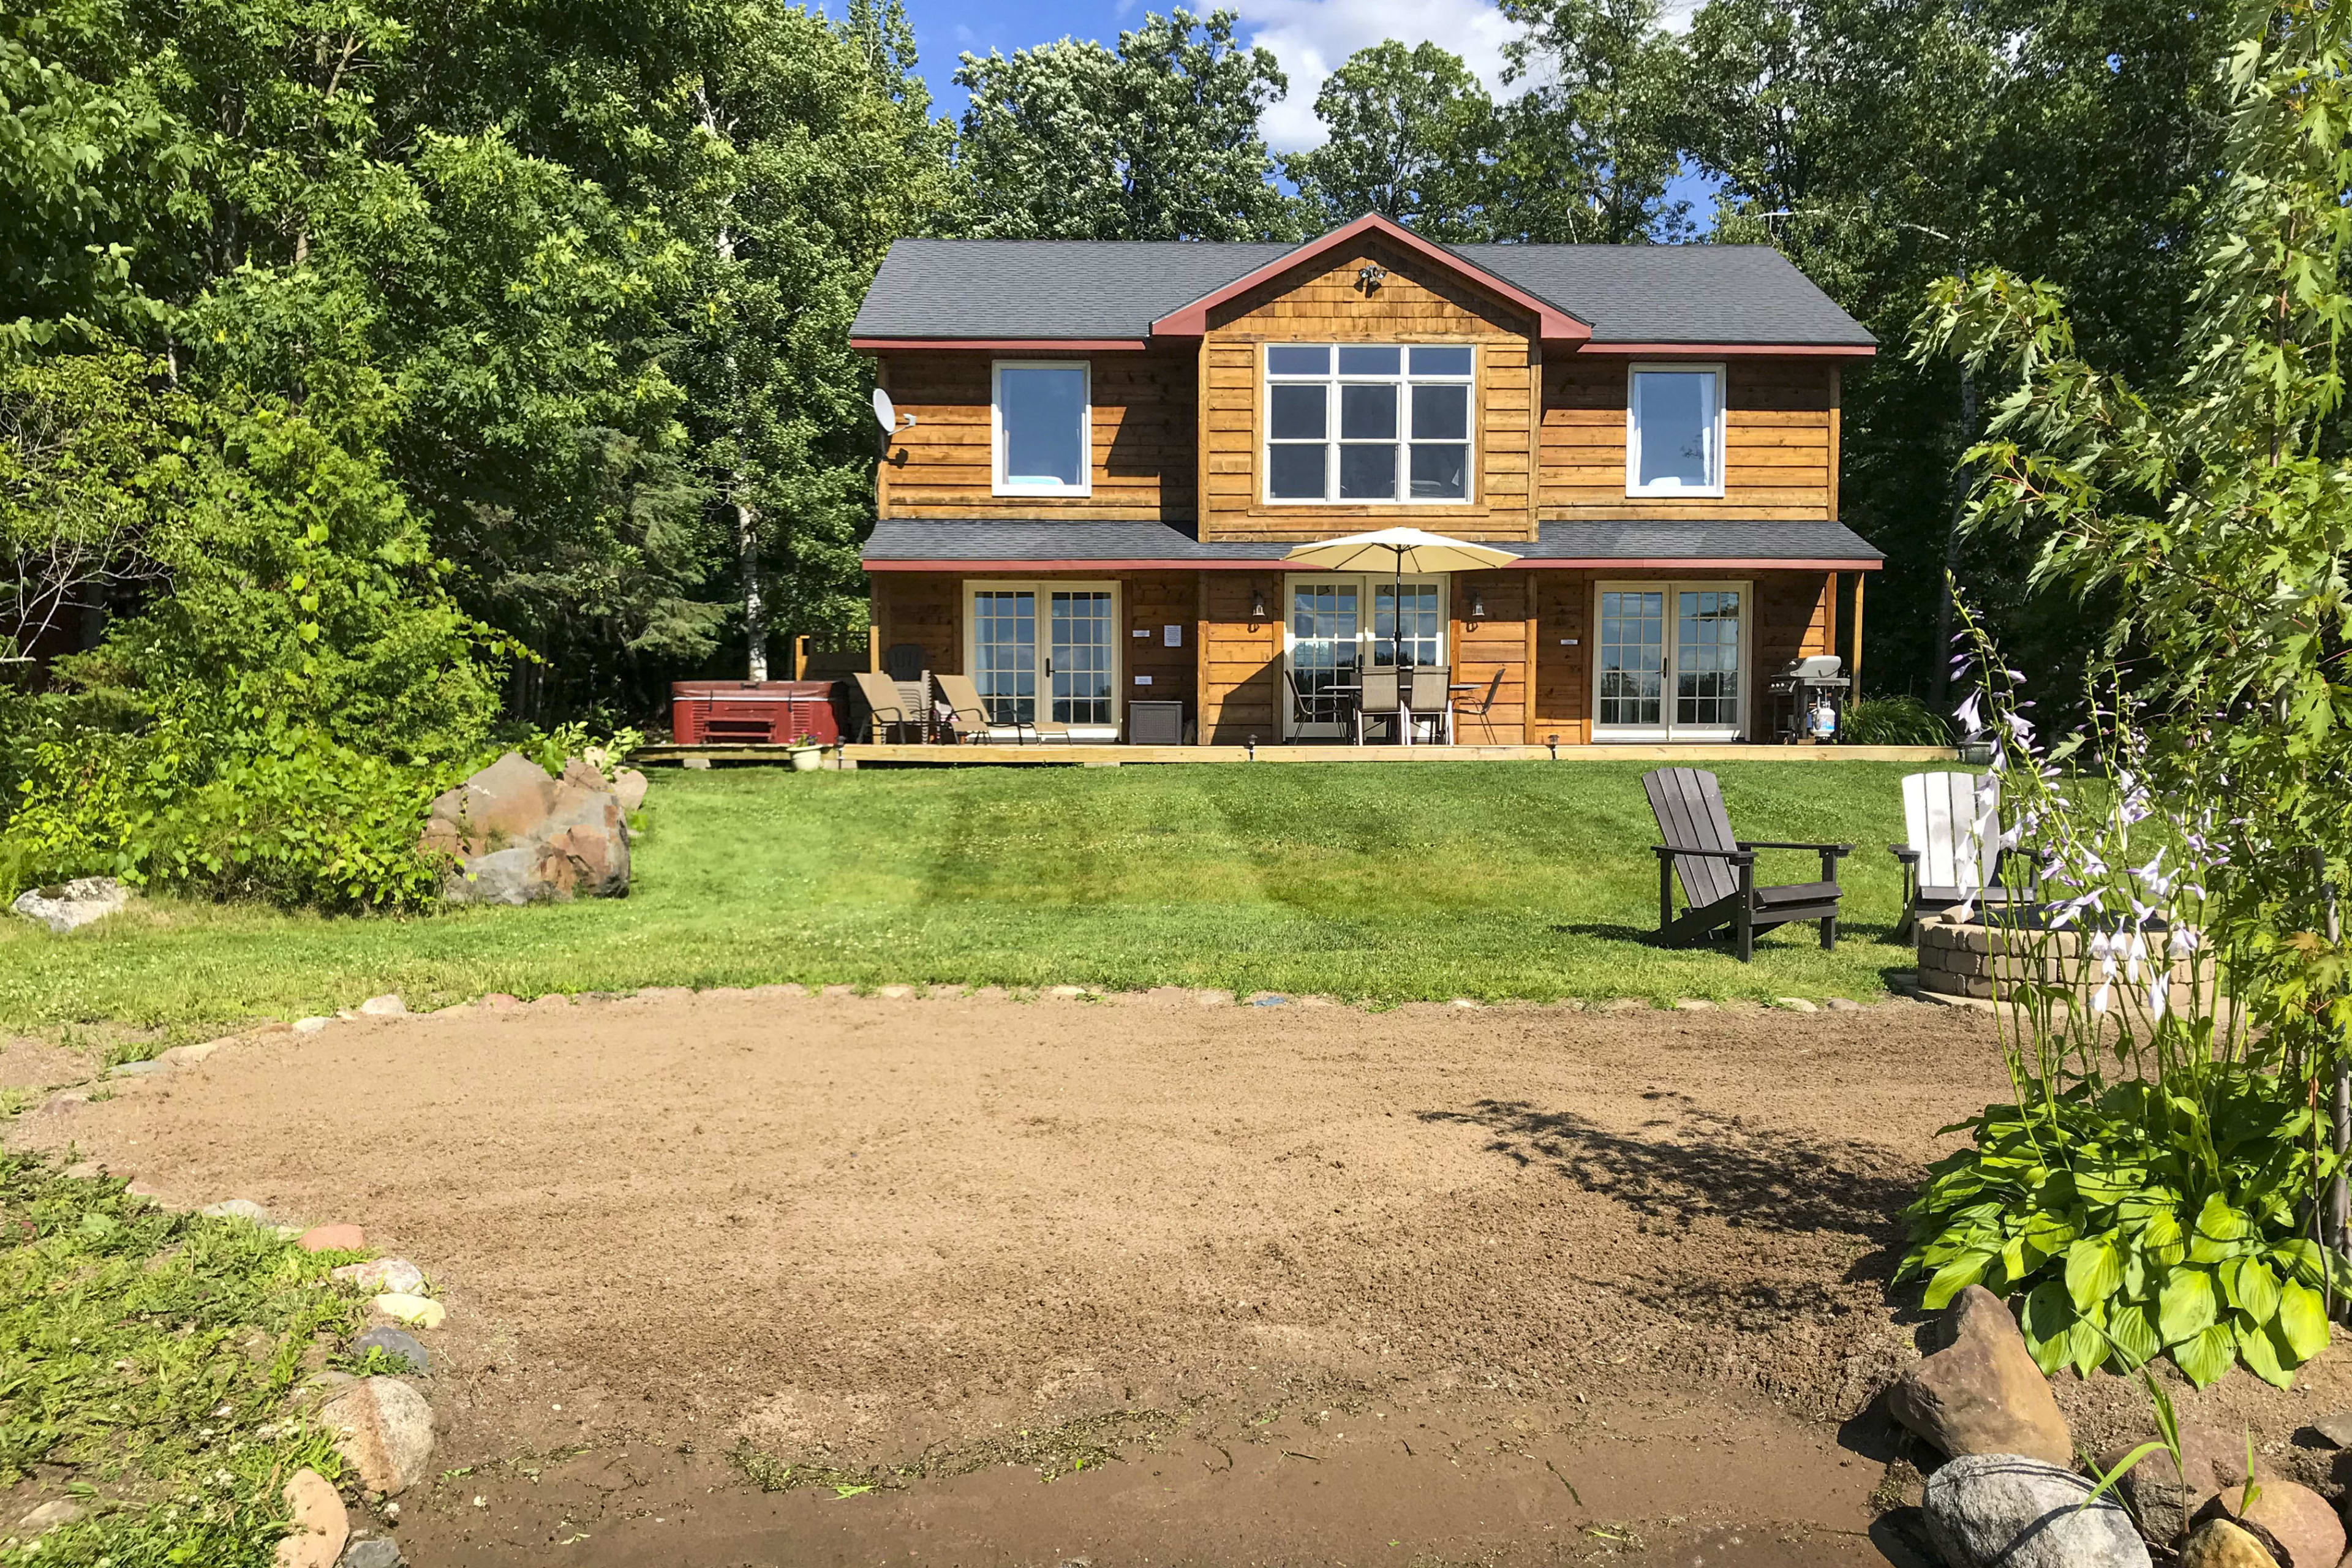 Enjoy the Land of 10,000 Lakes in style when you book this 5-BR, 2.5-BA home!